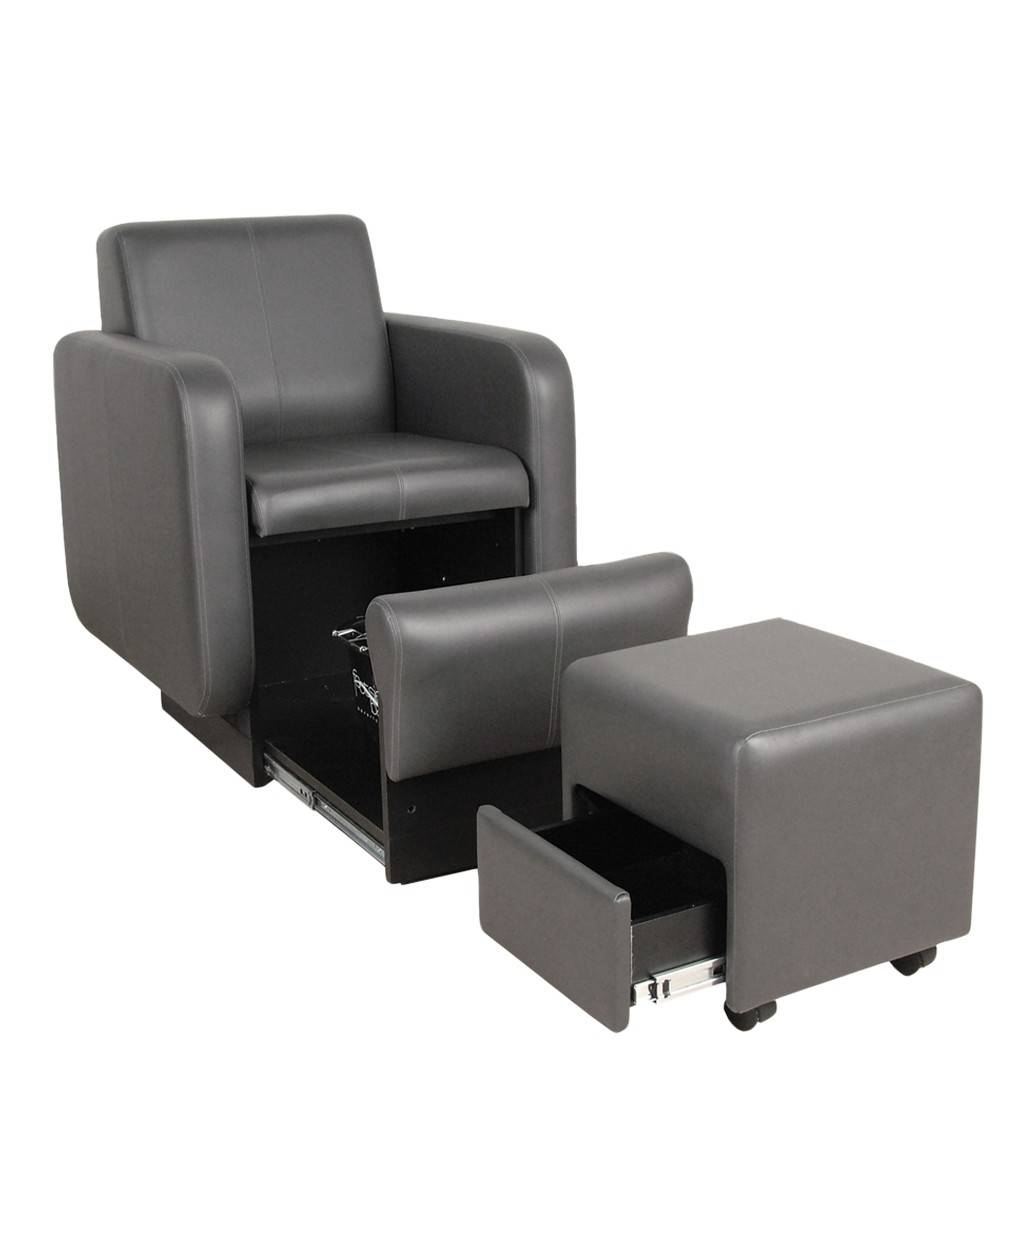 2555 Blush Club Pedicure Chair W/ Footsie Bath for Sofa Pedicure Chairs (Image 1 of 15)